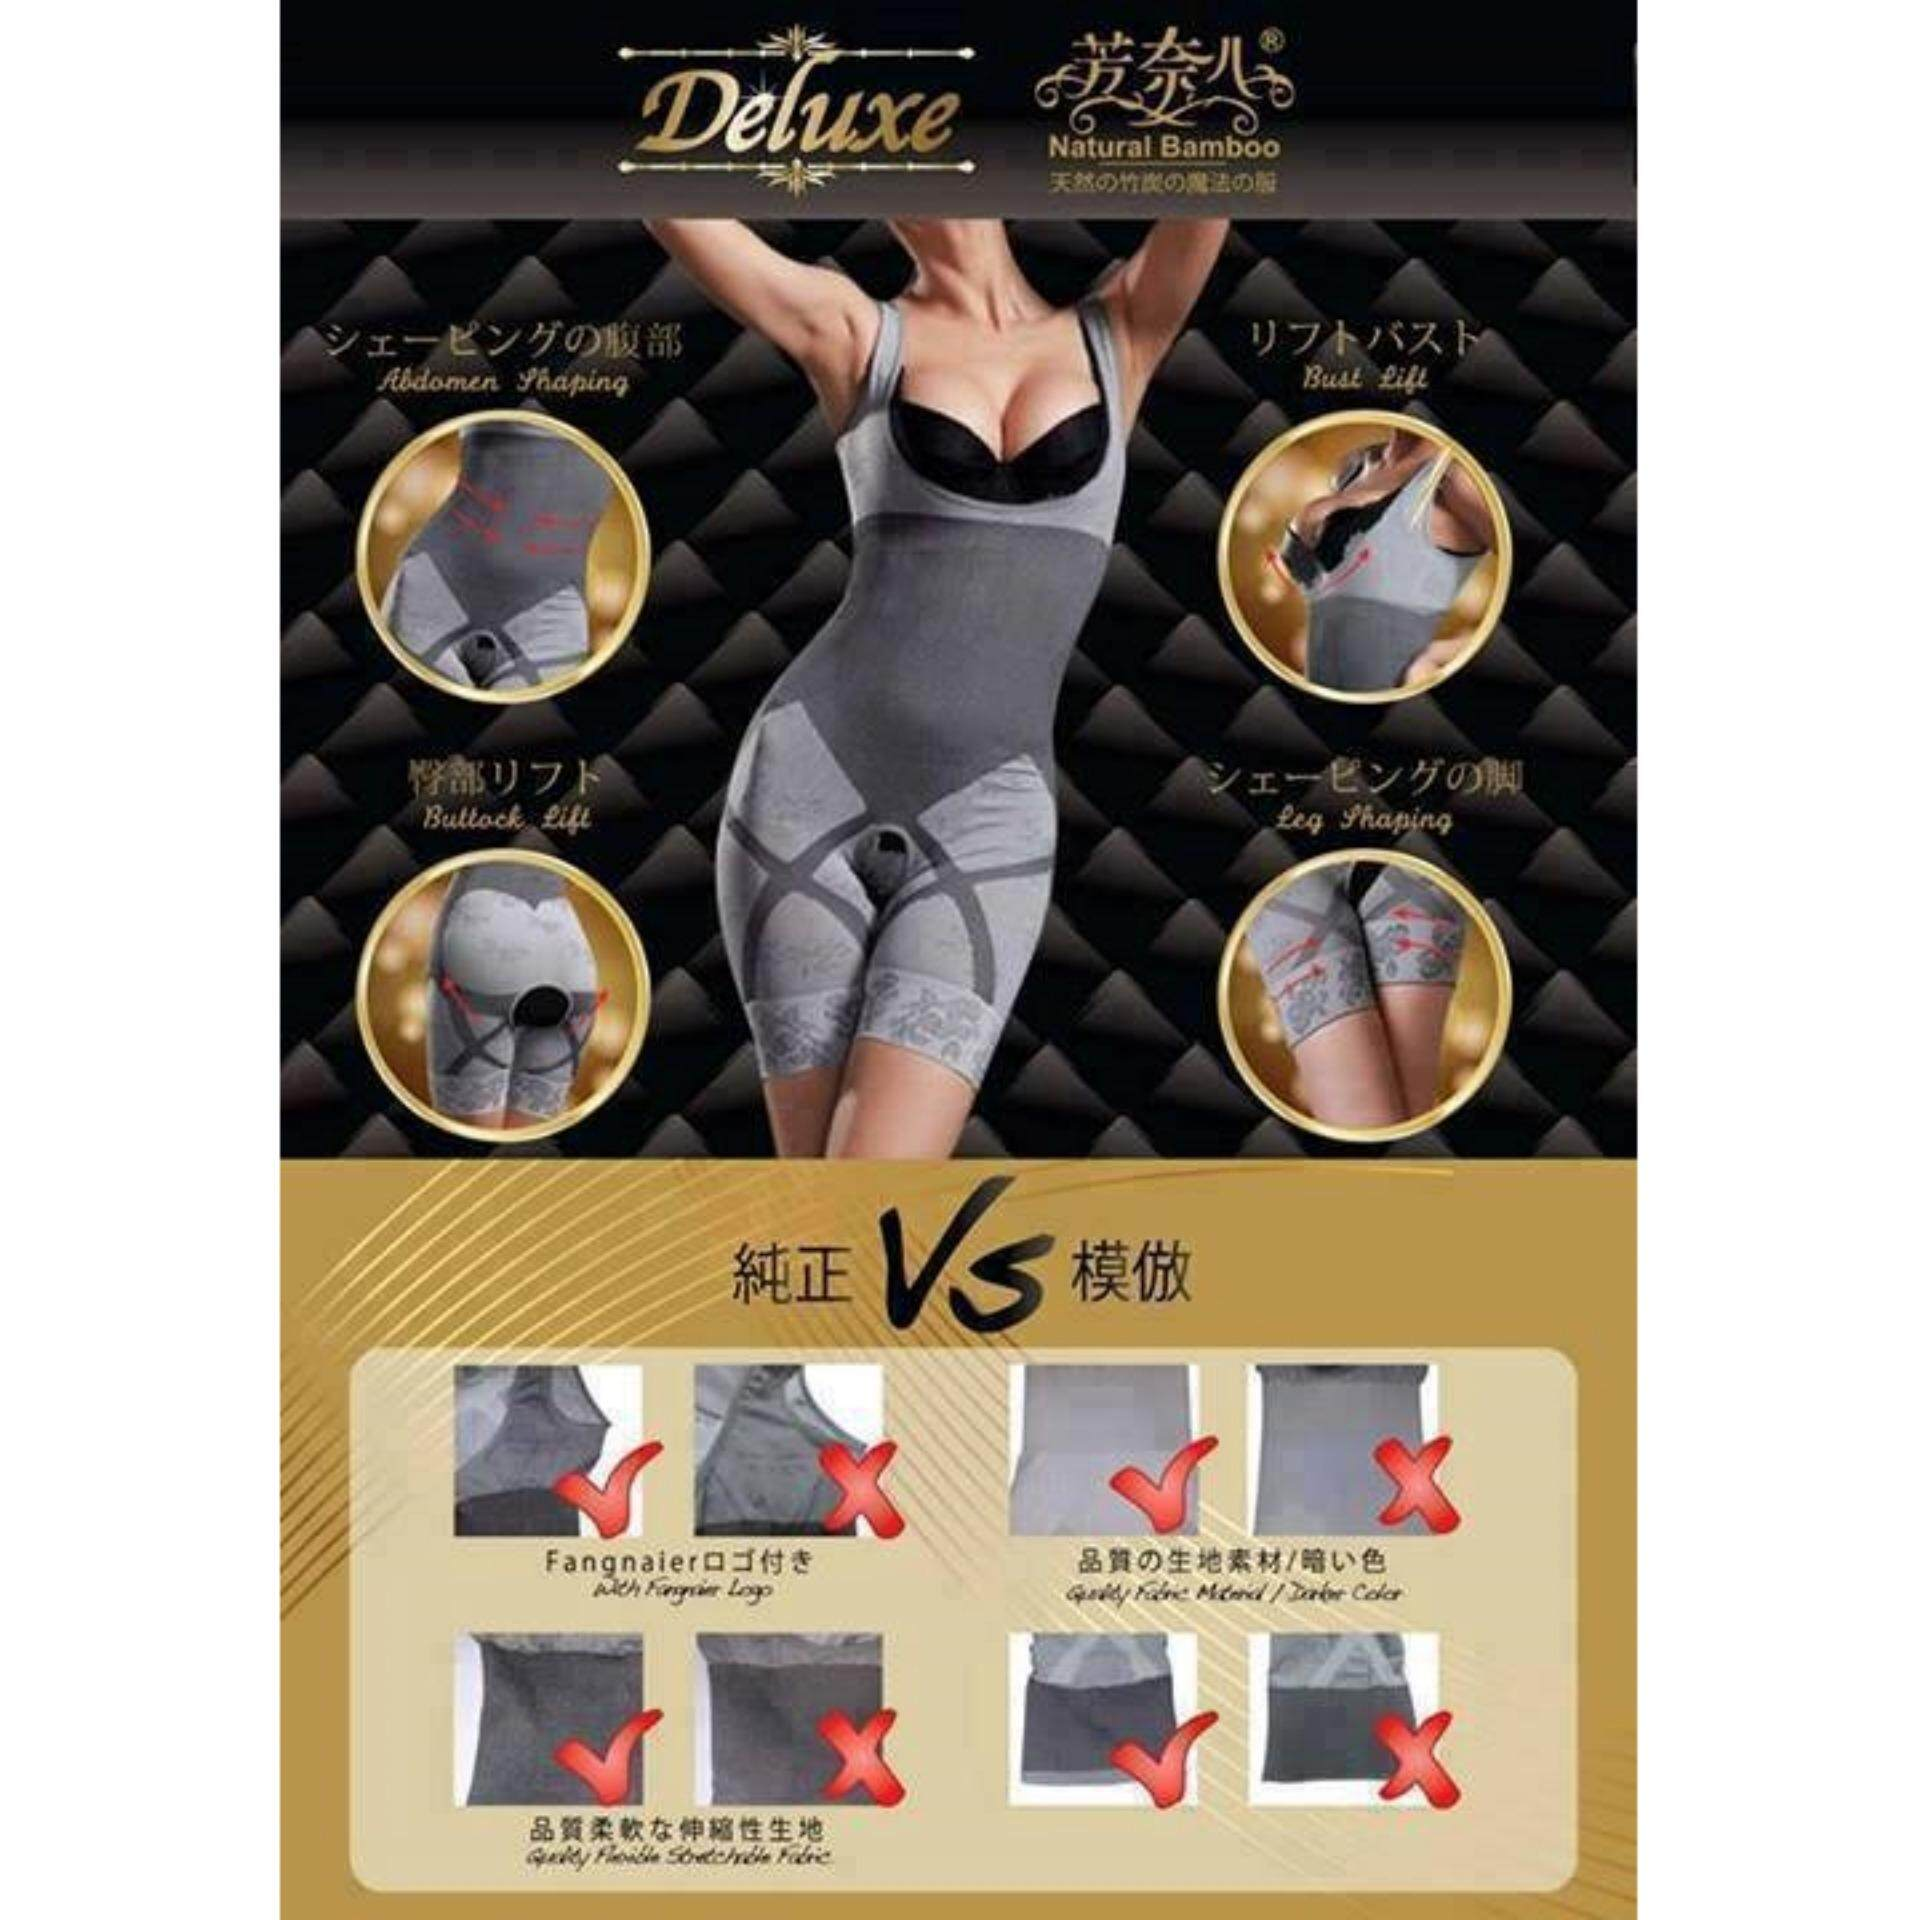 Deluxe Bamboo Slimming Suits (Size S-M)